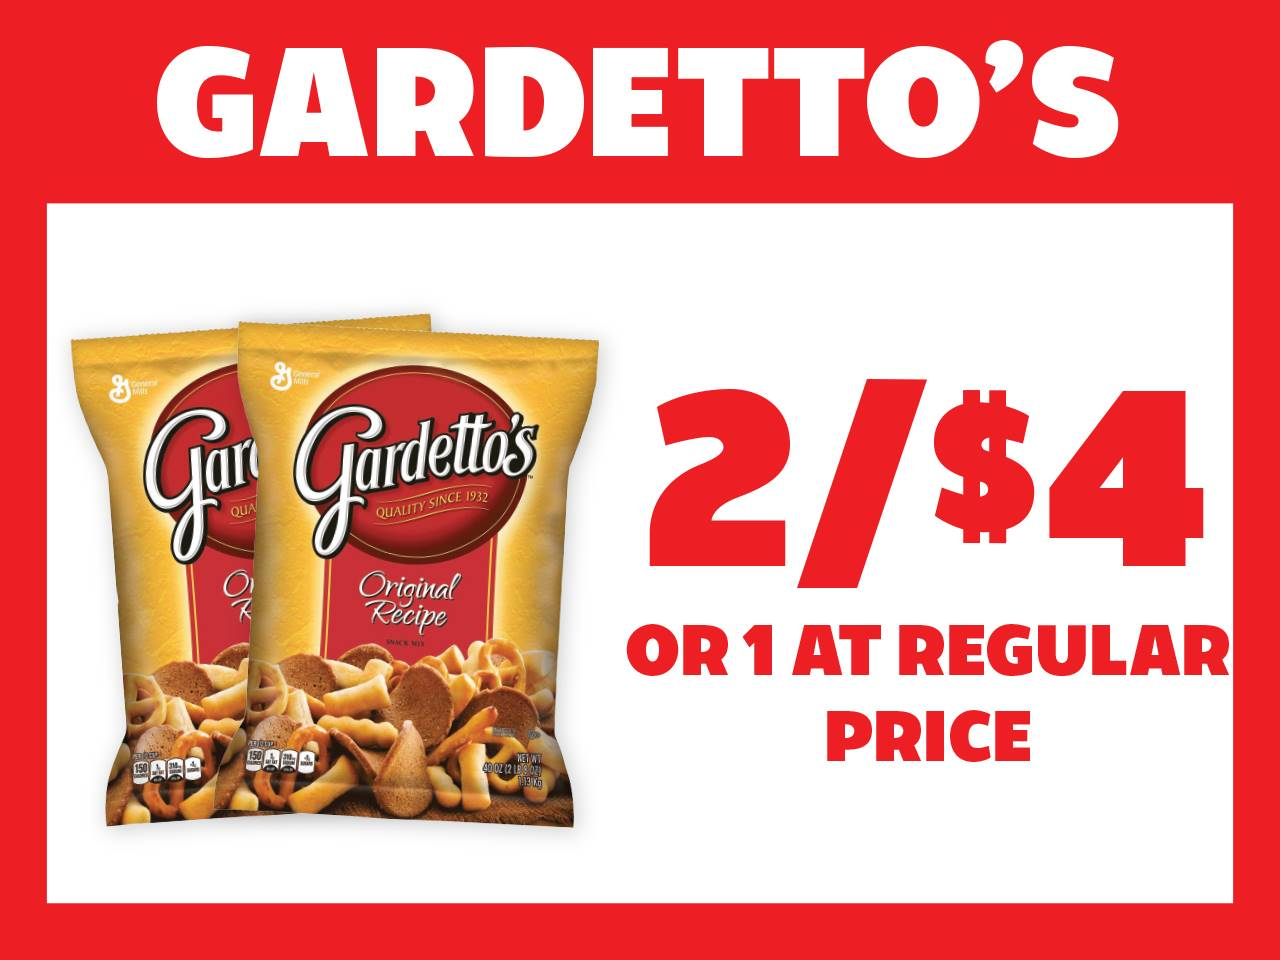 2 Gardetto's for $4 or 1 at Reg Price